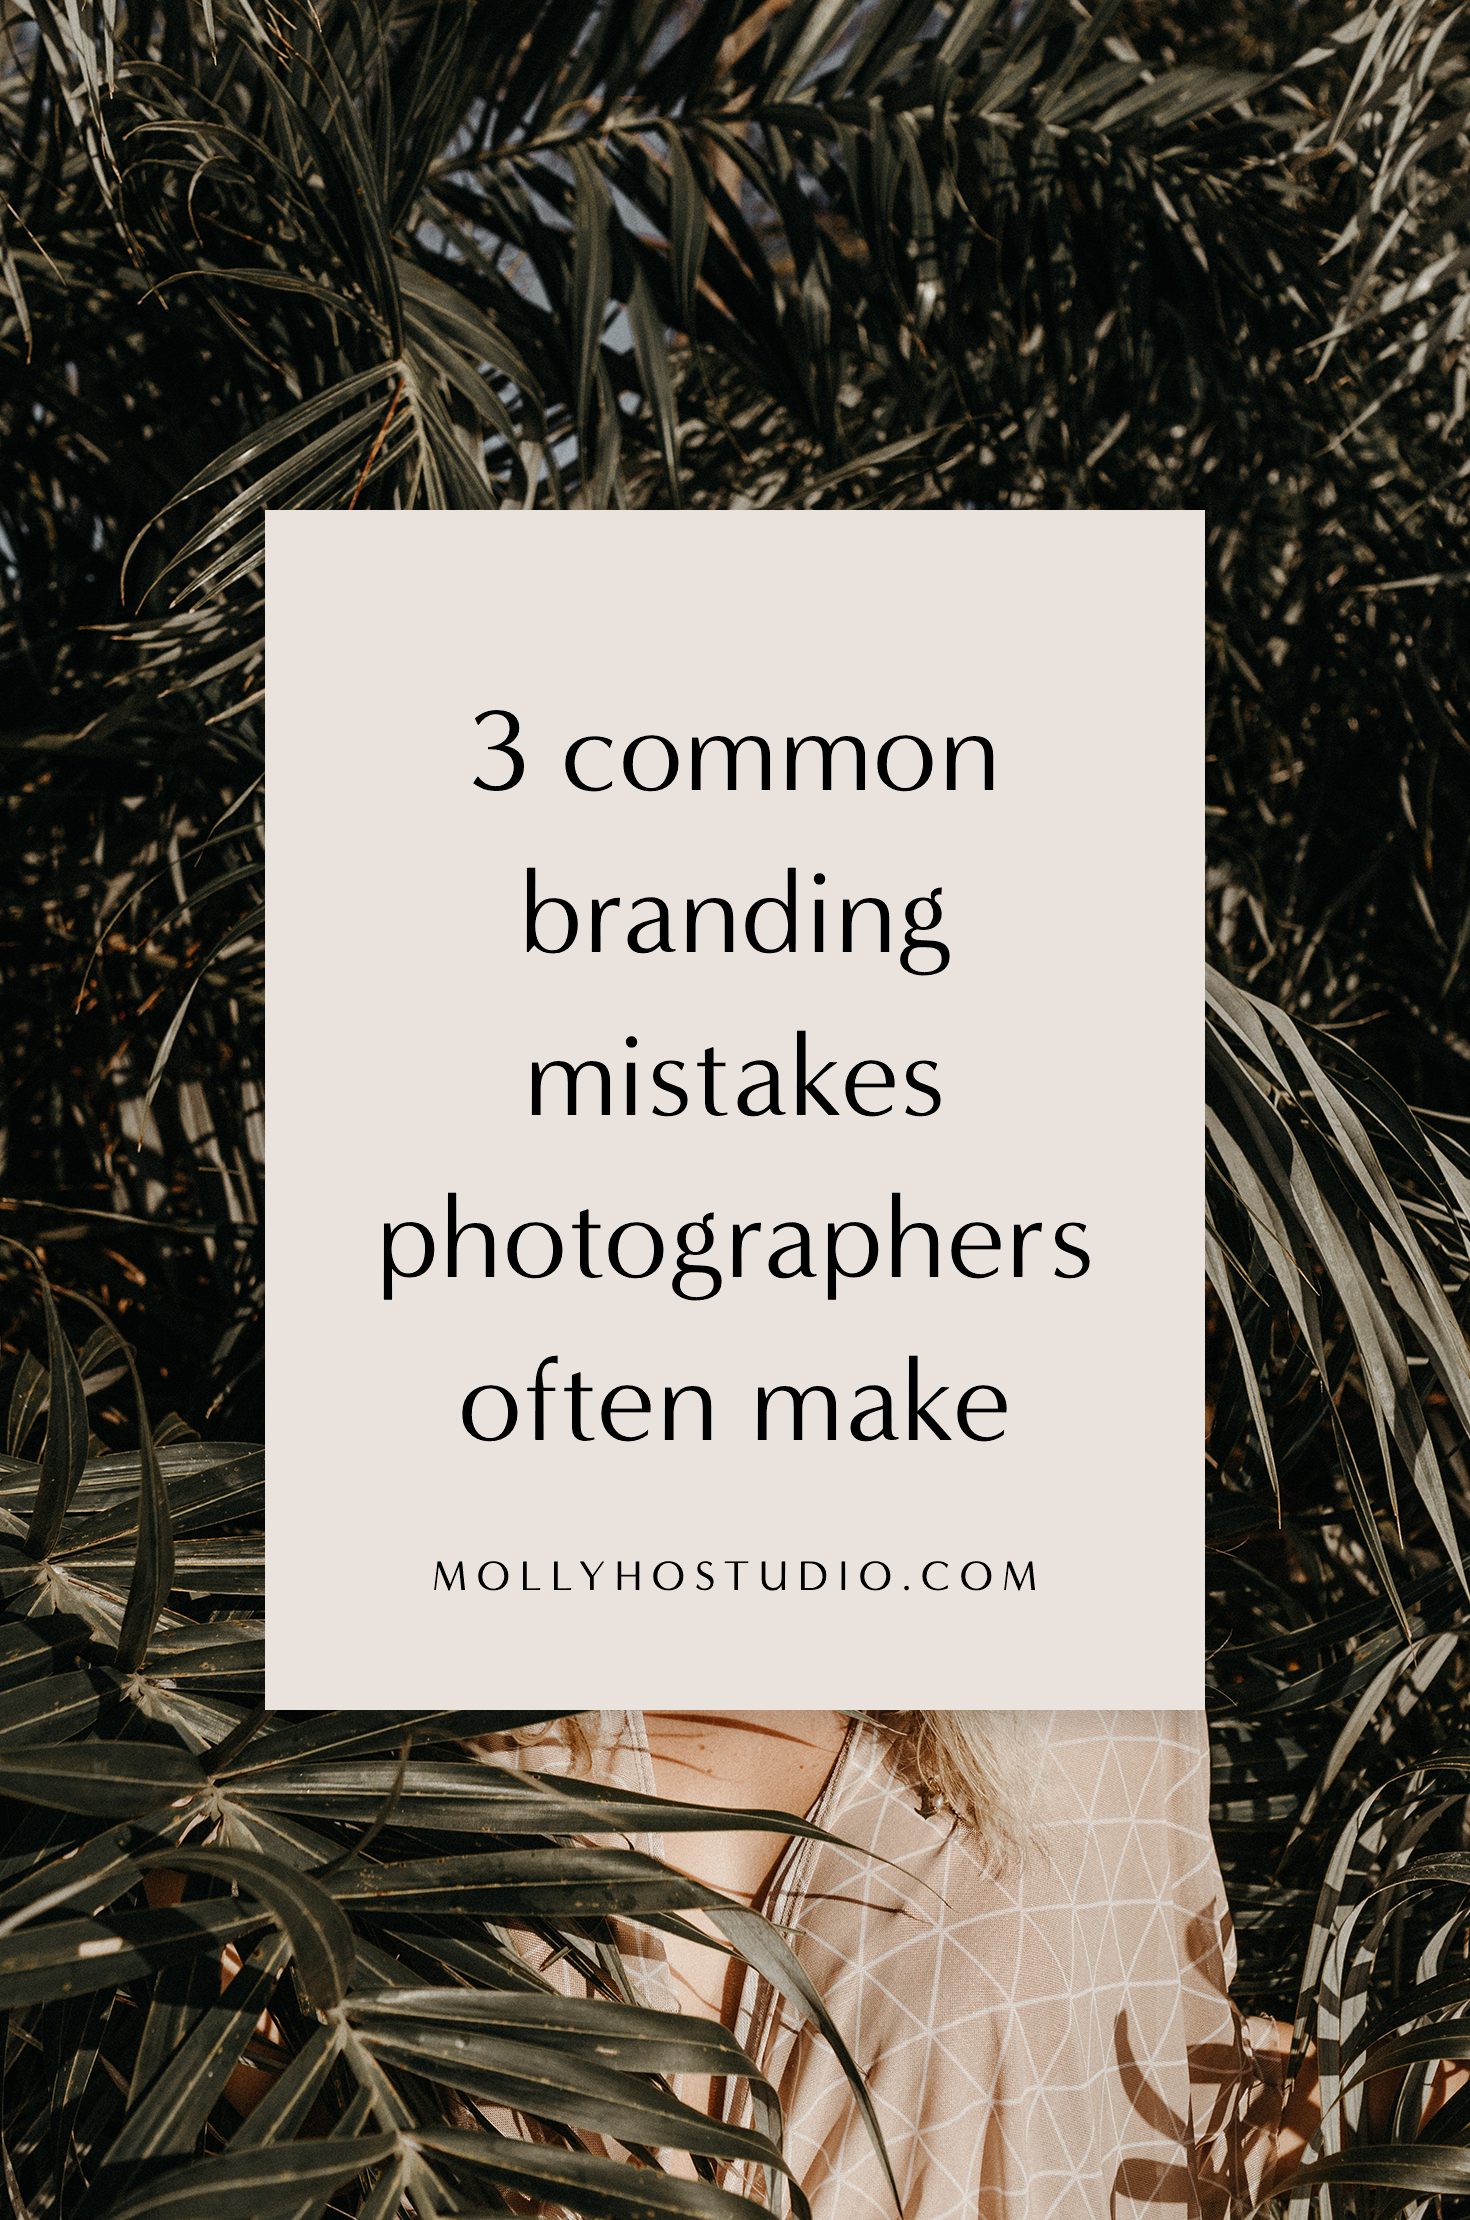 3 Common Branding Mistakes Photographers Often Make | Branding and Marketing Tips for Photographers | Photography Business Plan | Building A Personal Brand | Growing Your Photography Business on Pinterest | How To Set Yourself Apart In An Oversaturated Market | How To Brand Your Photography Business | Photography Tips For Beginners | How To Start A Photography Business | Molly Ho Studio